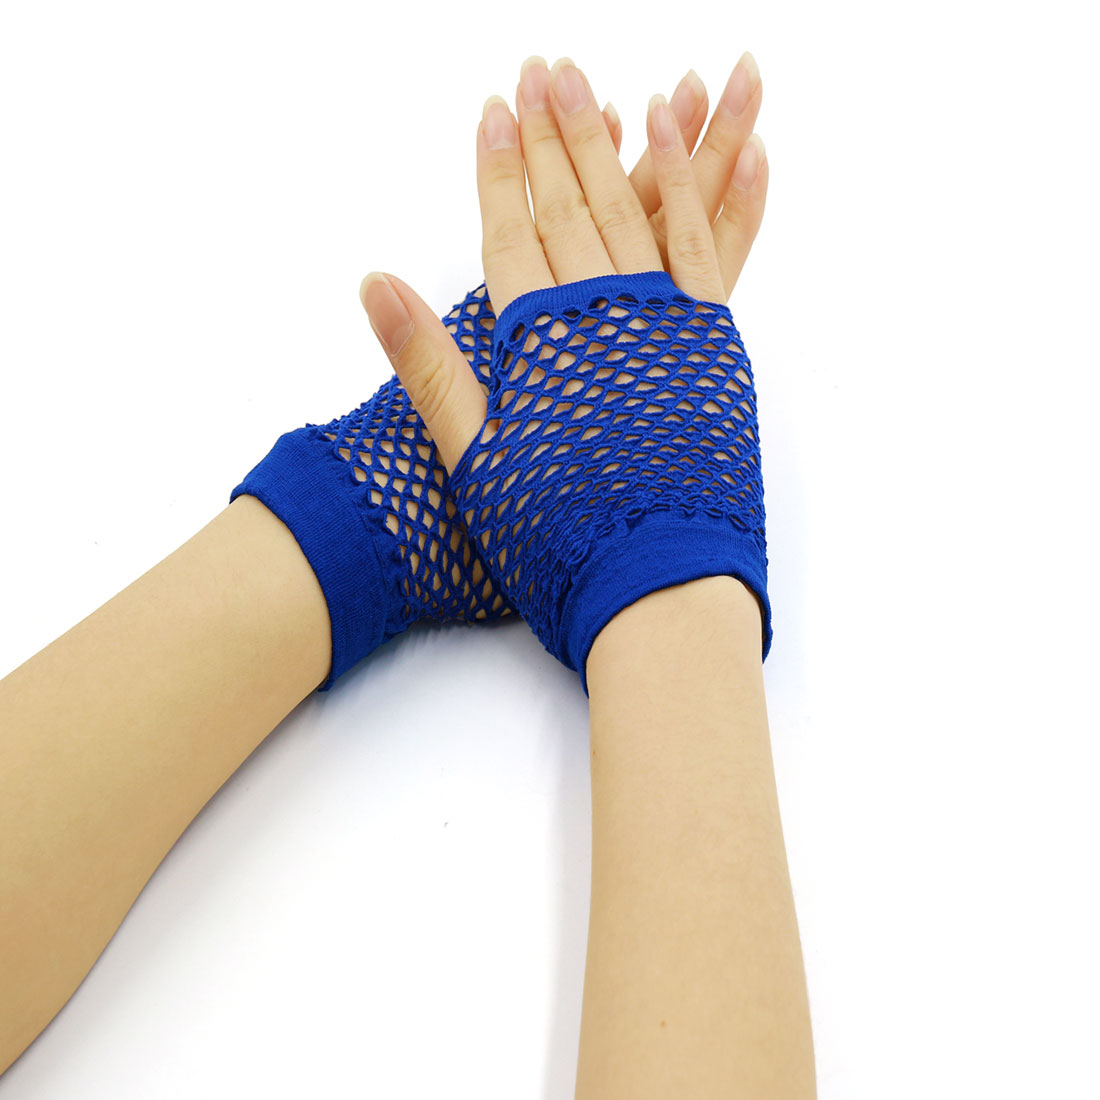 Buy 1 Get 1 Free | Women's Wrist Length Stretchy Fingerless Fishnet Gloves Blue